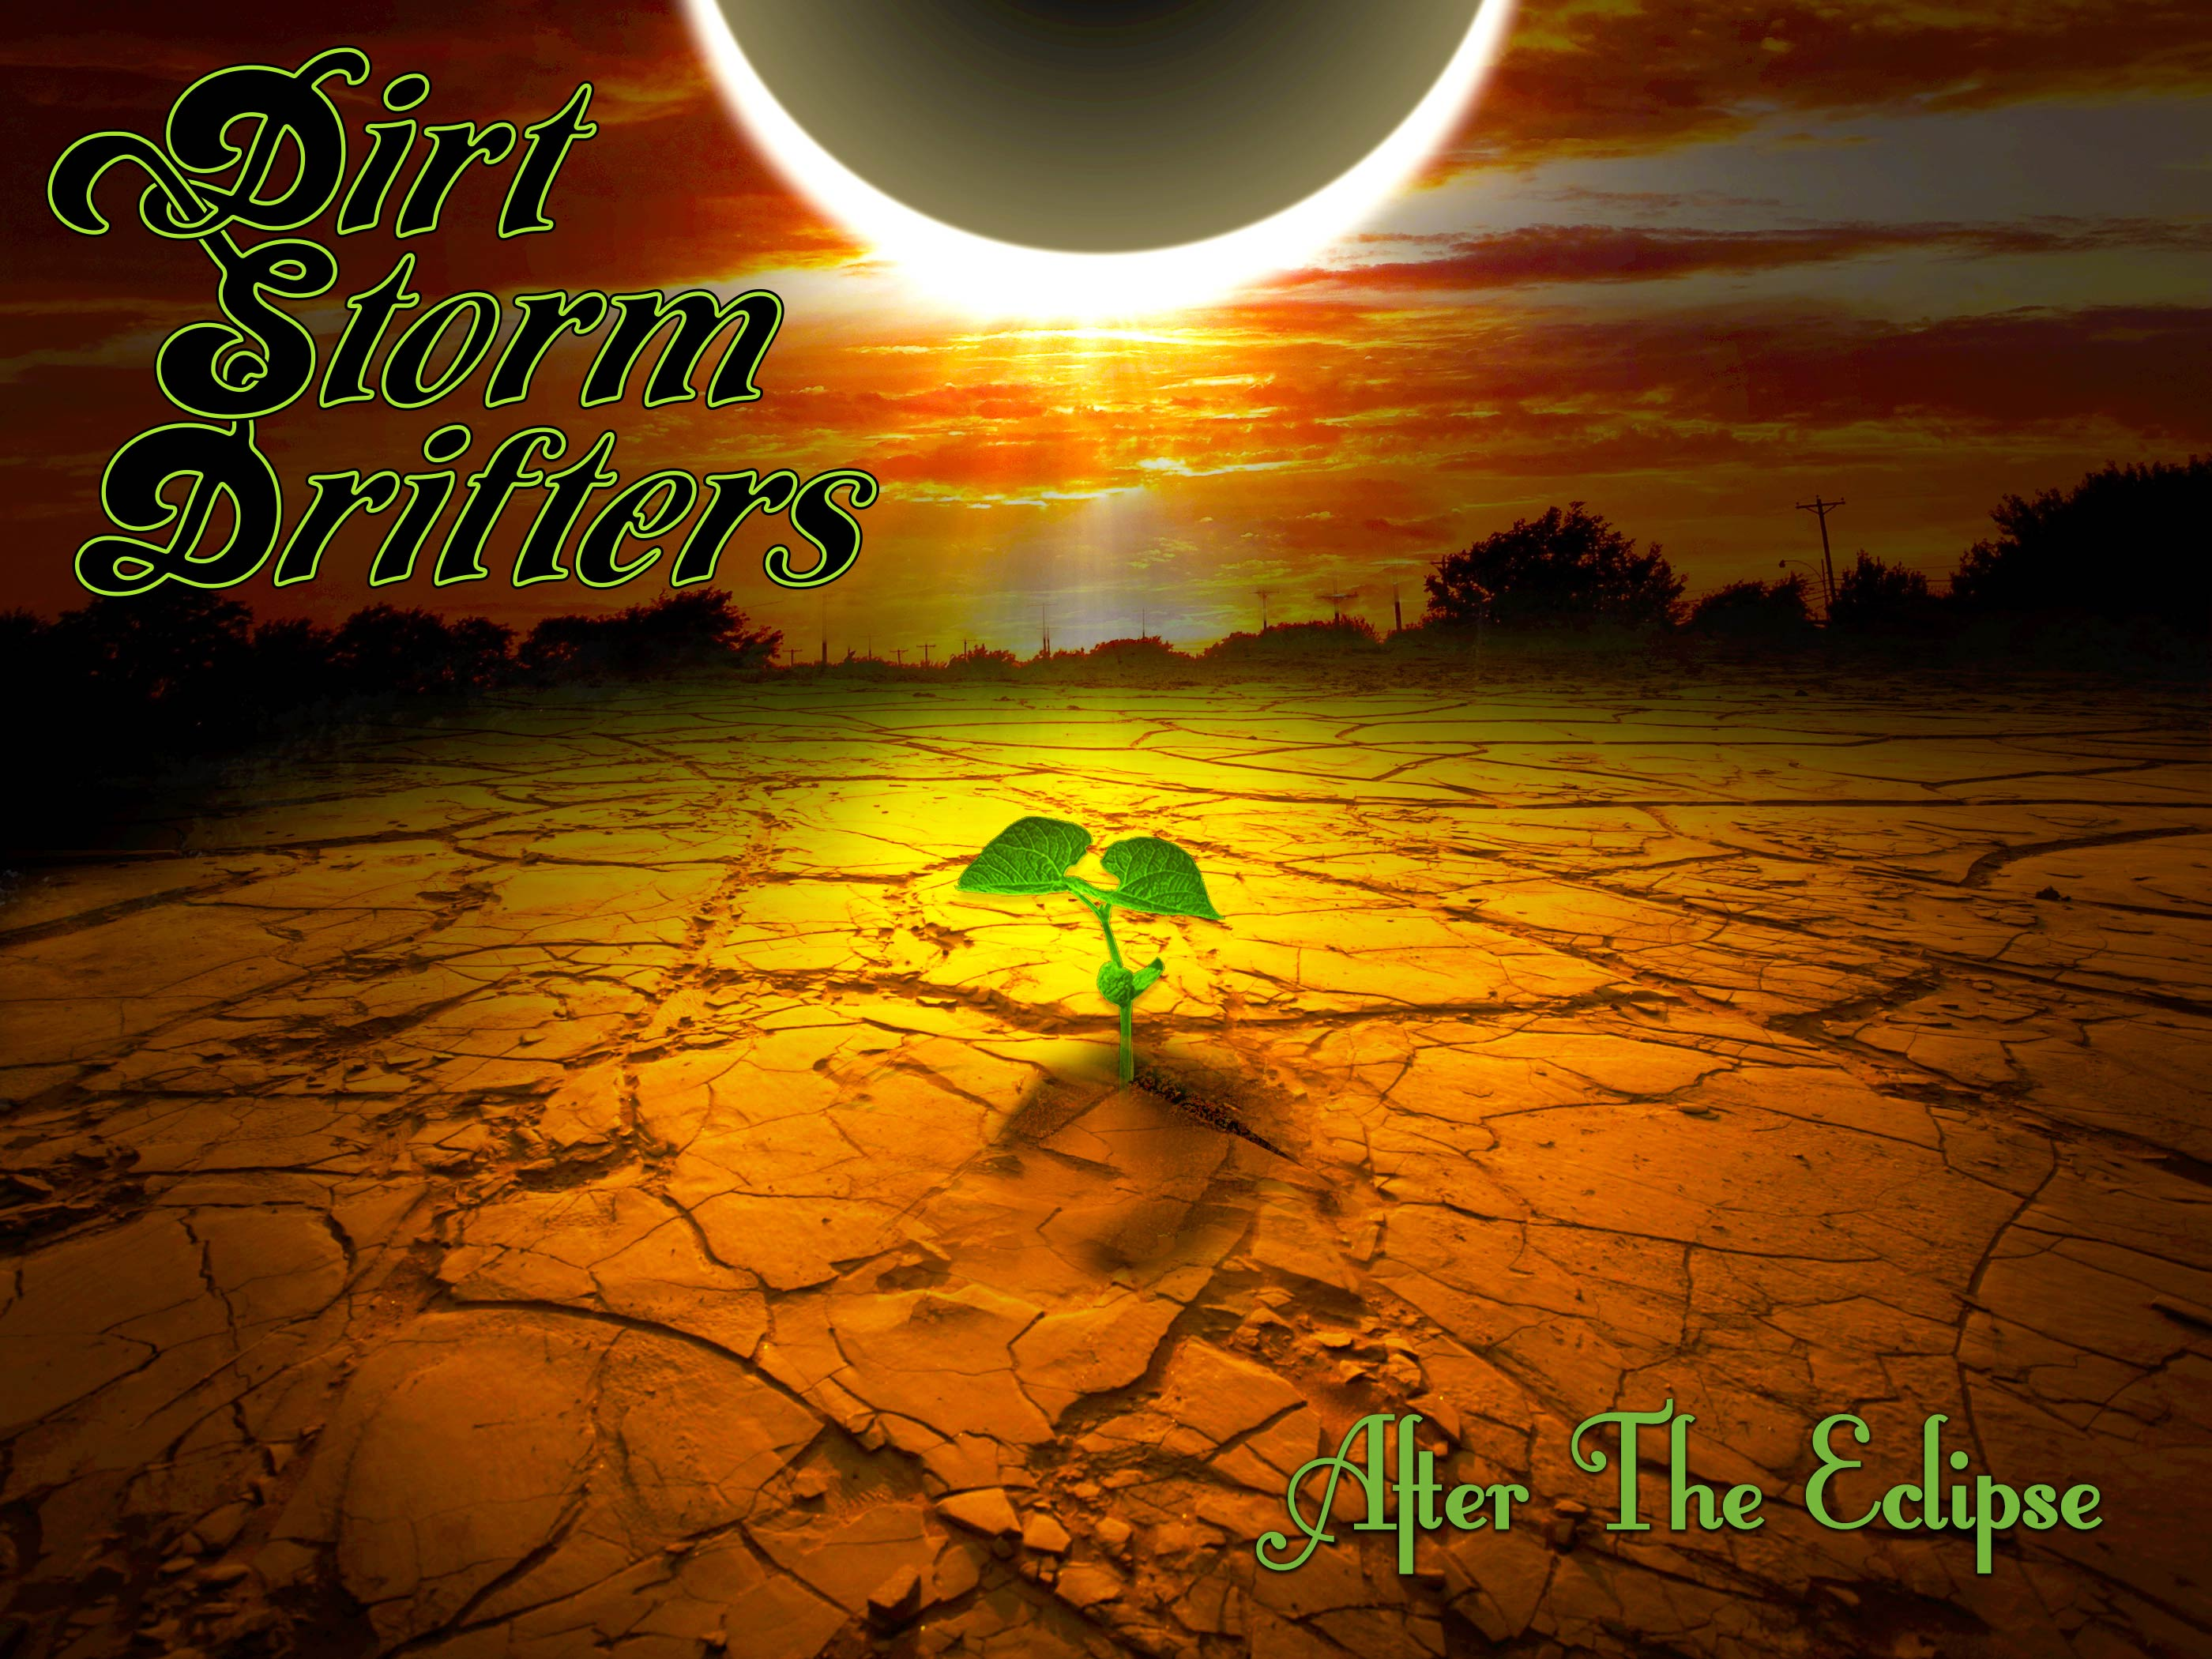 Dirt Storm Drfiters - After The Eclipse Album Art